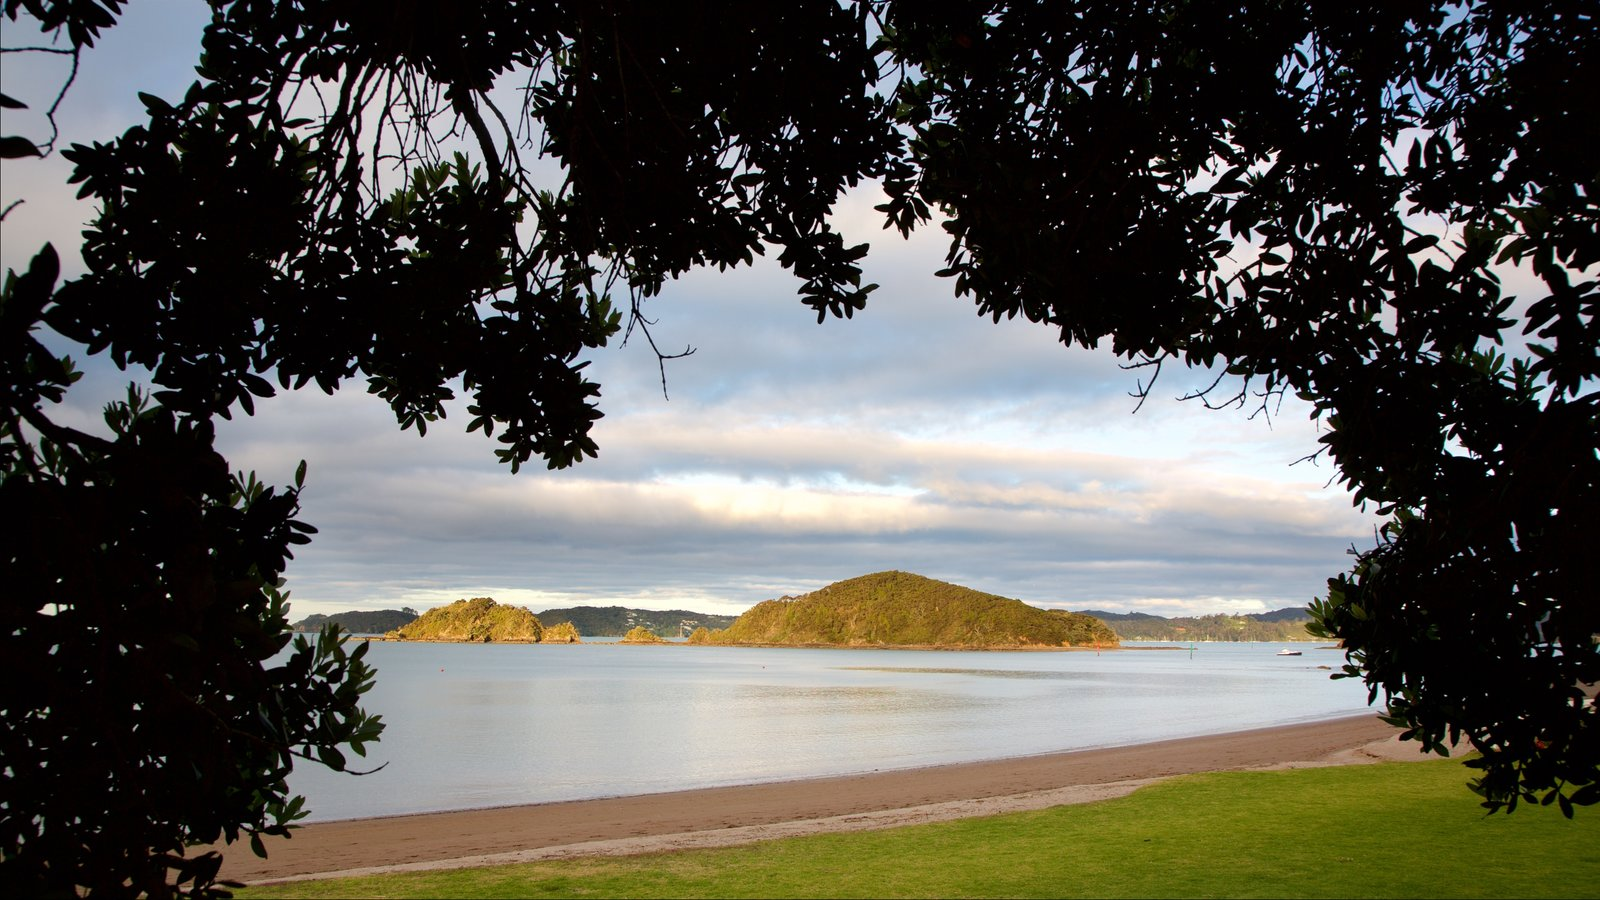 Paihia Beach featuring a sunset, a bay or harbor and a beach